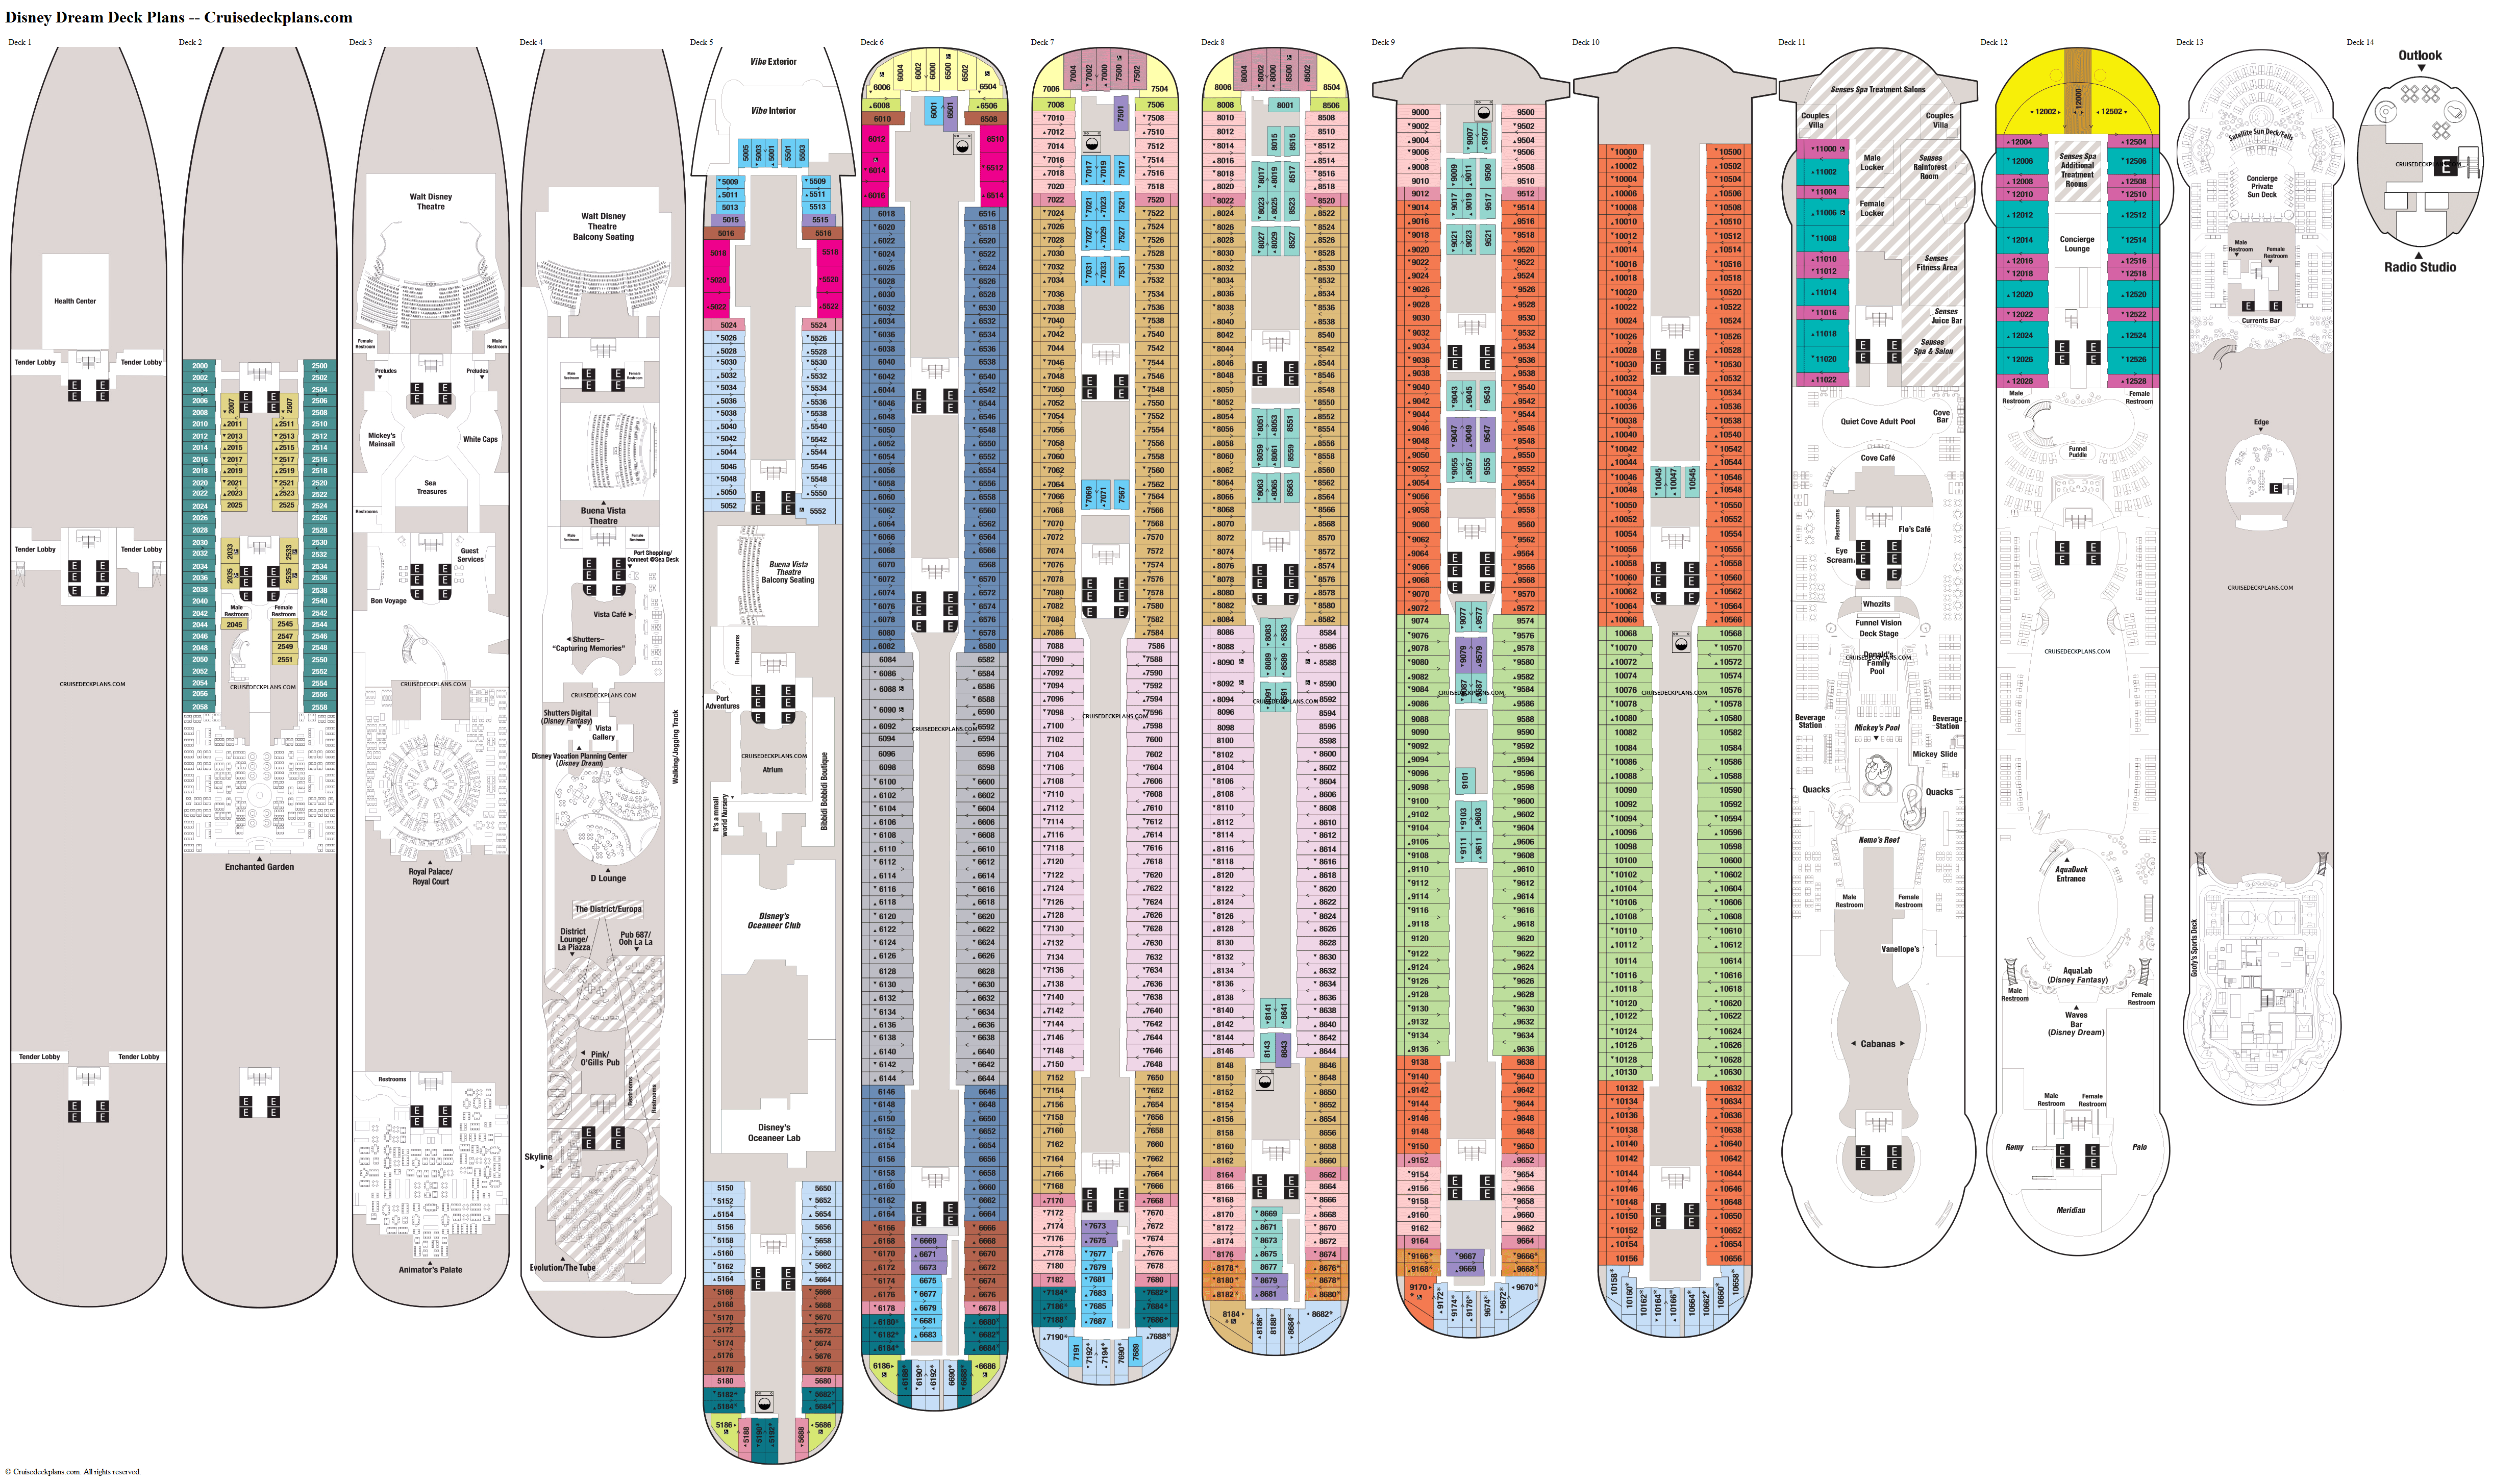 Disney Dream deck plans image